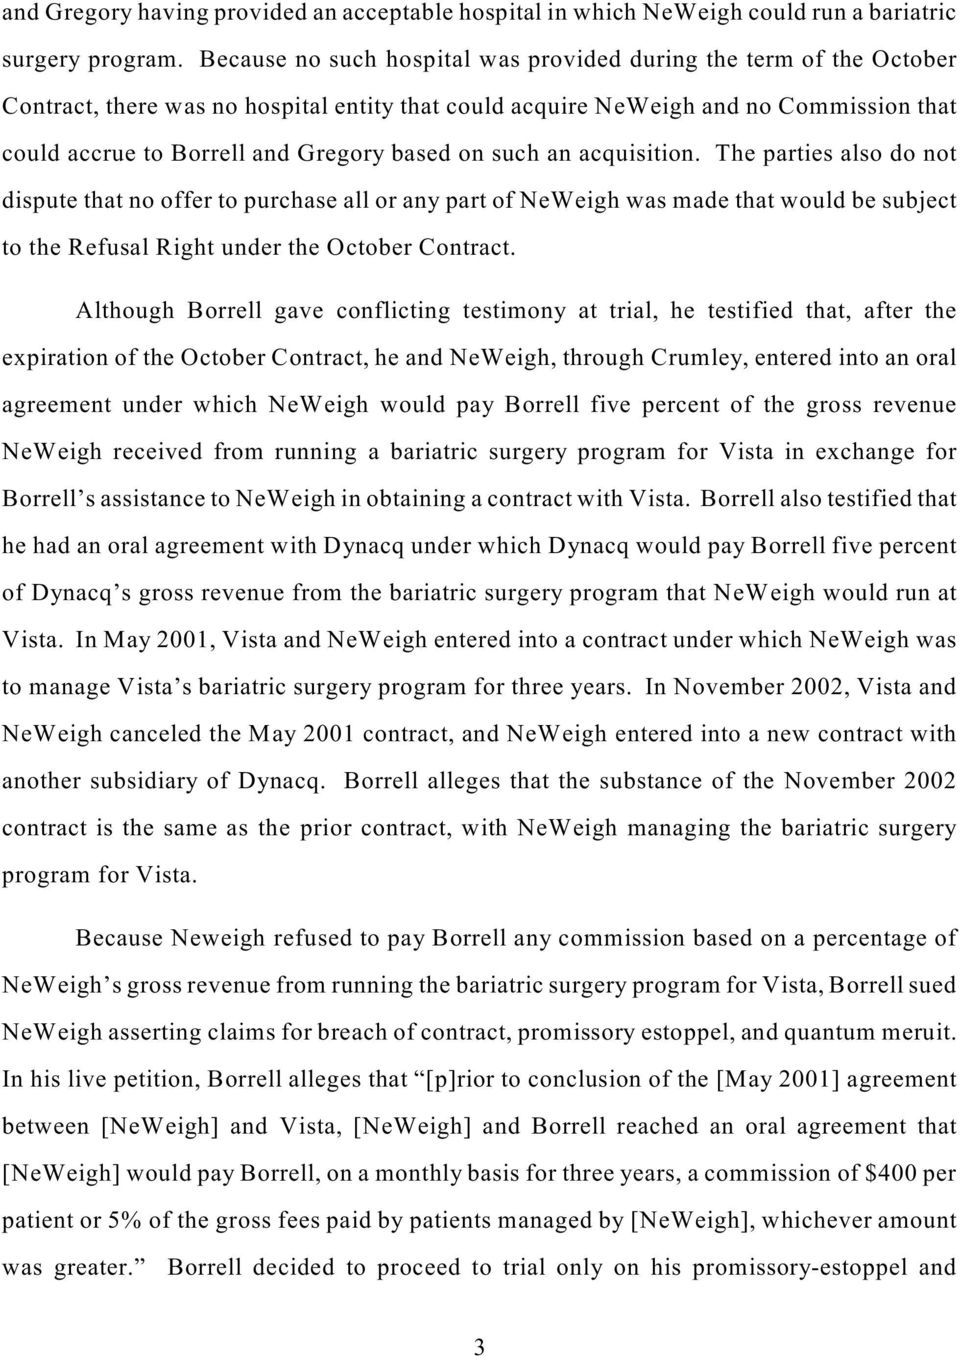 on such an acquisition. The parties also do not dispute that no offer to purchase all or any part of NeWeigh was made that would be subject to the Refusal Right under the October Contract.